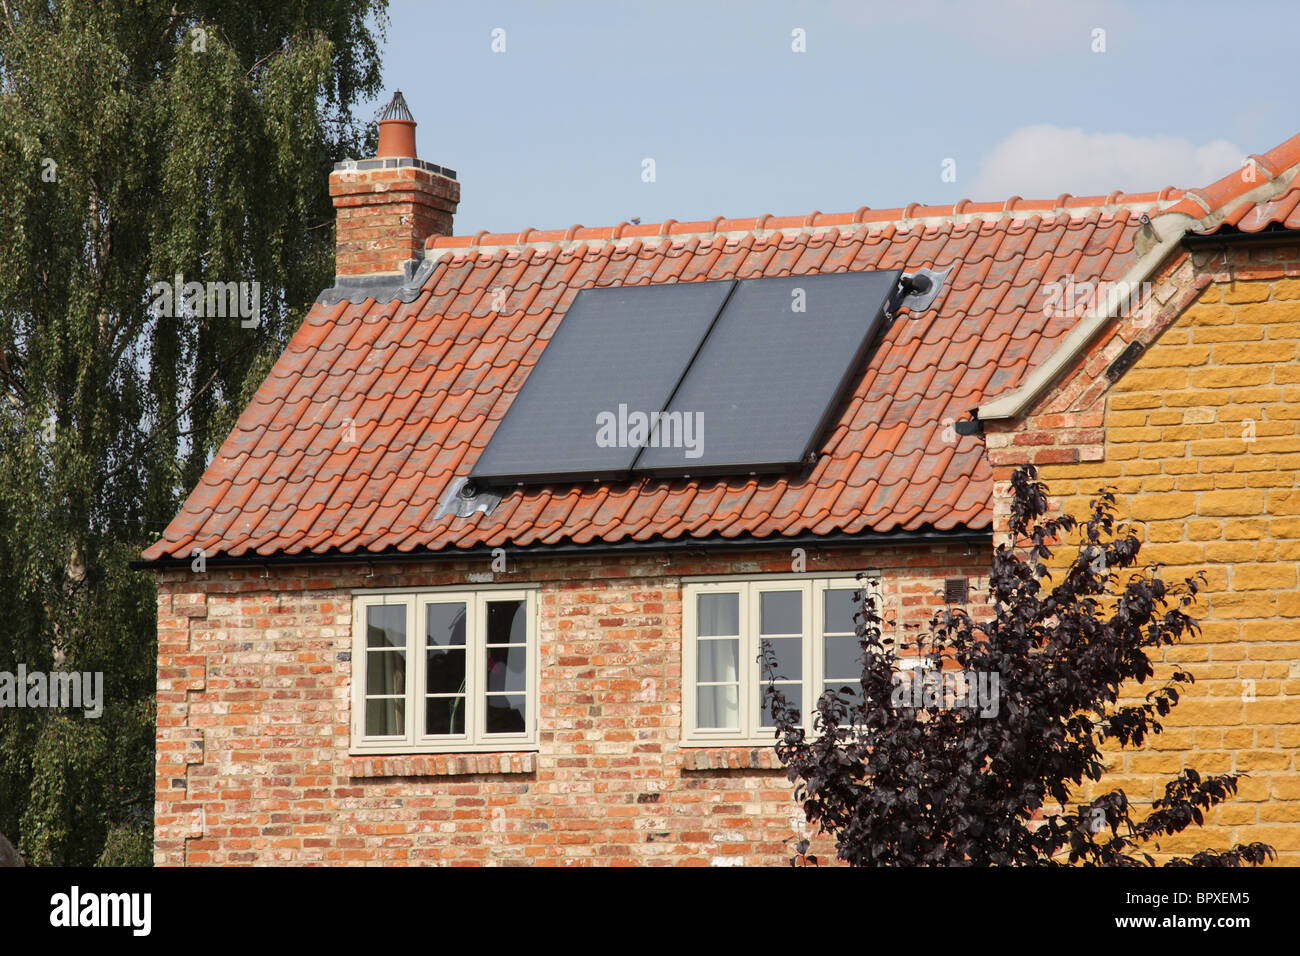 Solar panels on a house in the U.K. - Stock Image